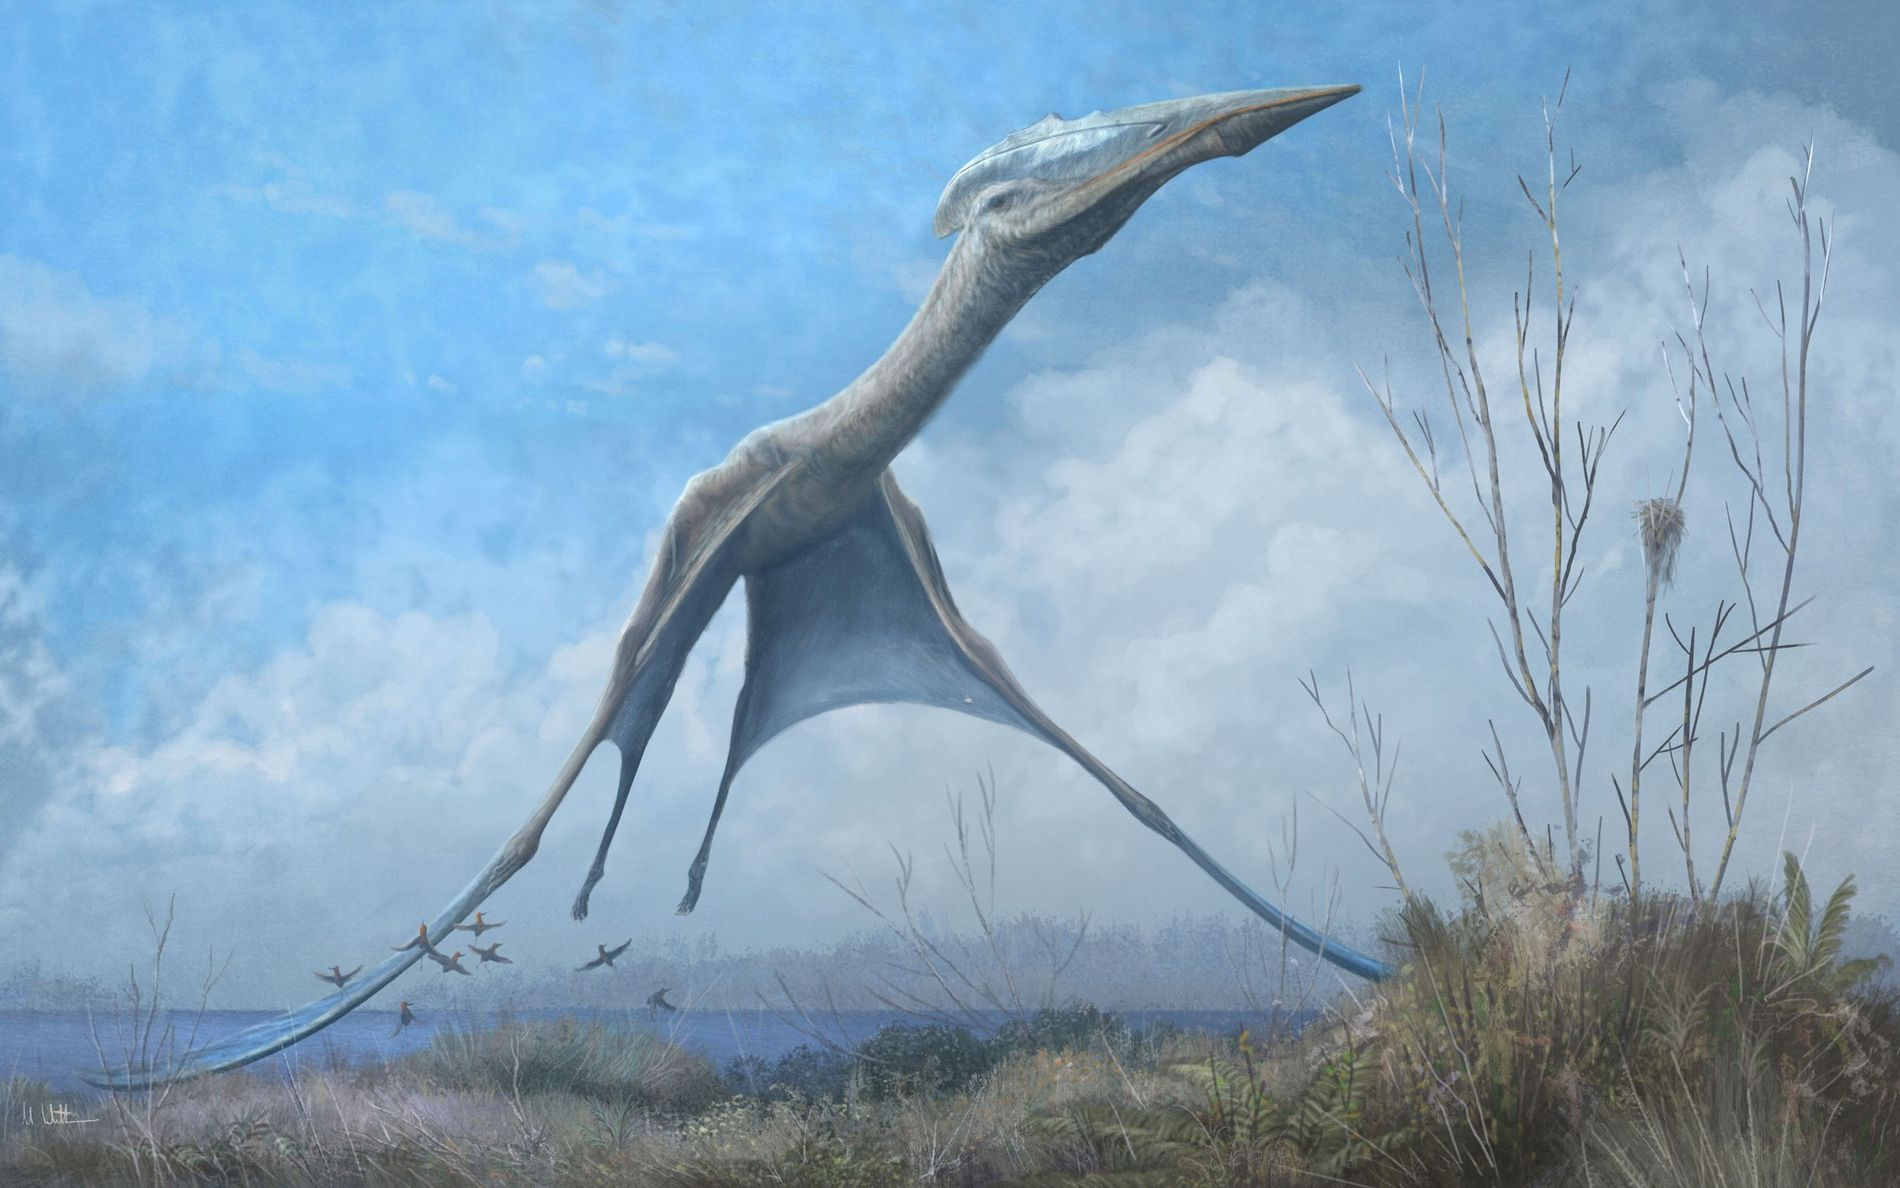 An azhdarchid pterosaur takes flight in Romainia in an illustration. Fossils recovered from the fire-damaged Museu Nacional in Brazil show that flying reptiles from this same group also soared over Antarctica in the late Cretaceous.